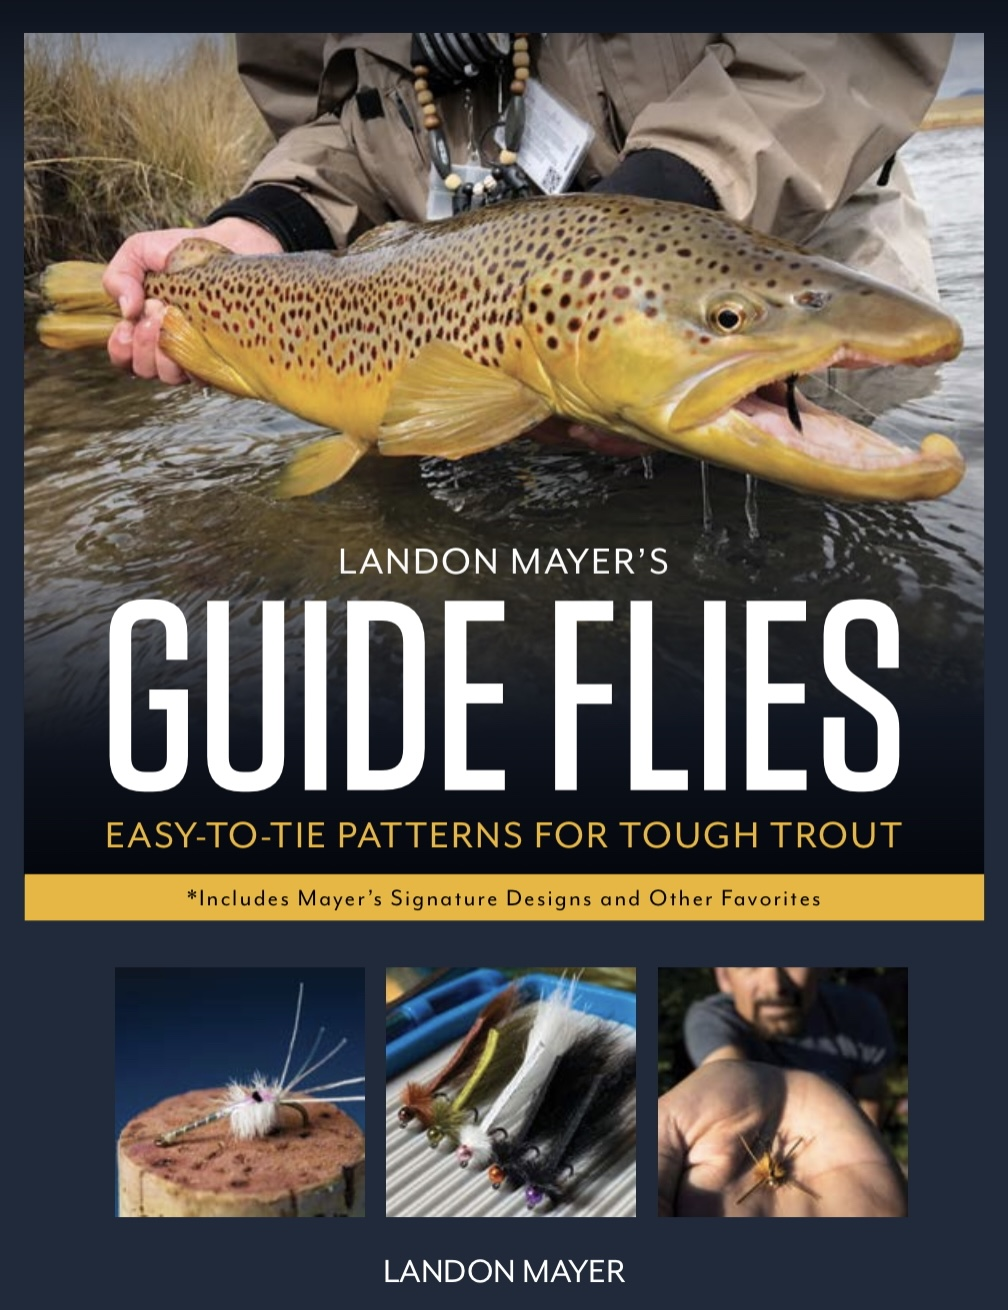 The cover of Landon Mayer's upcoming book The Hunt for Giant Trout